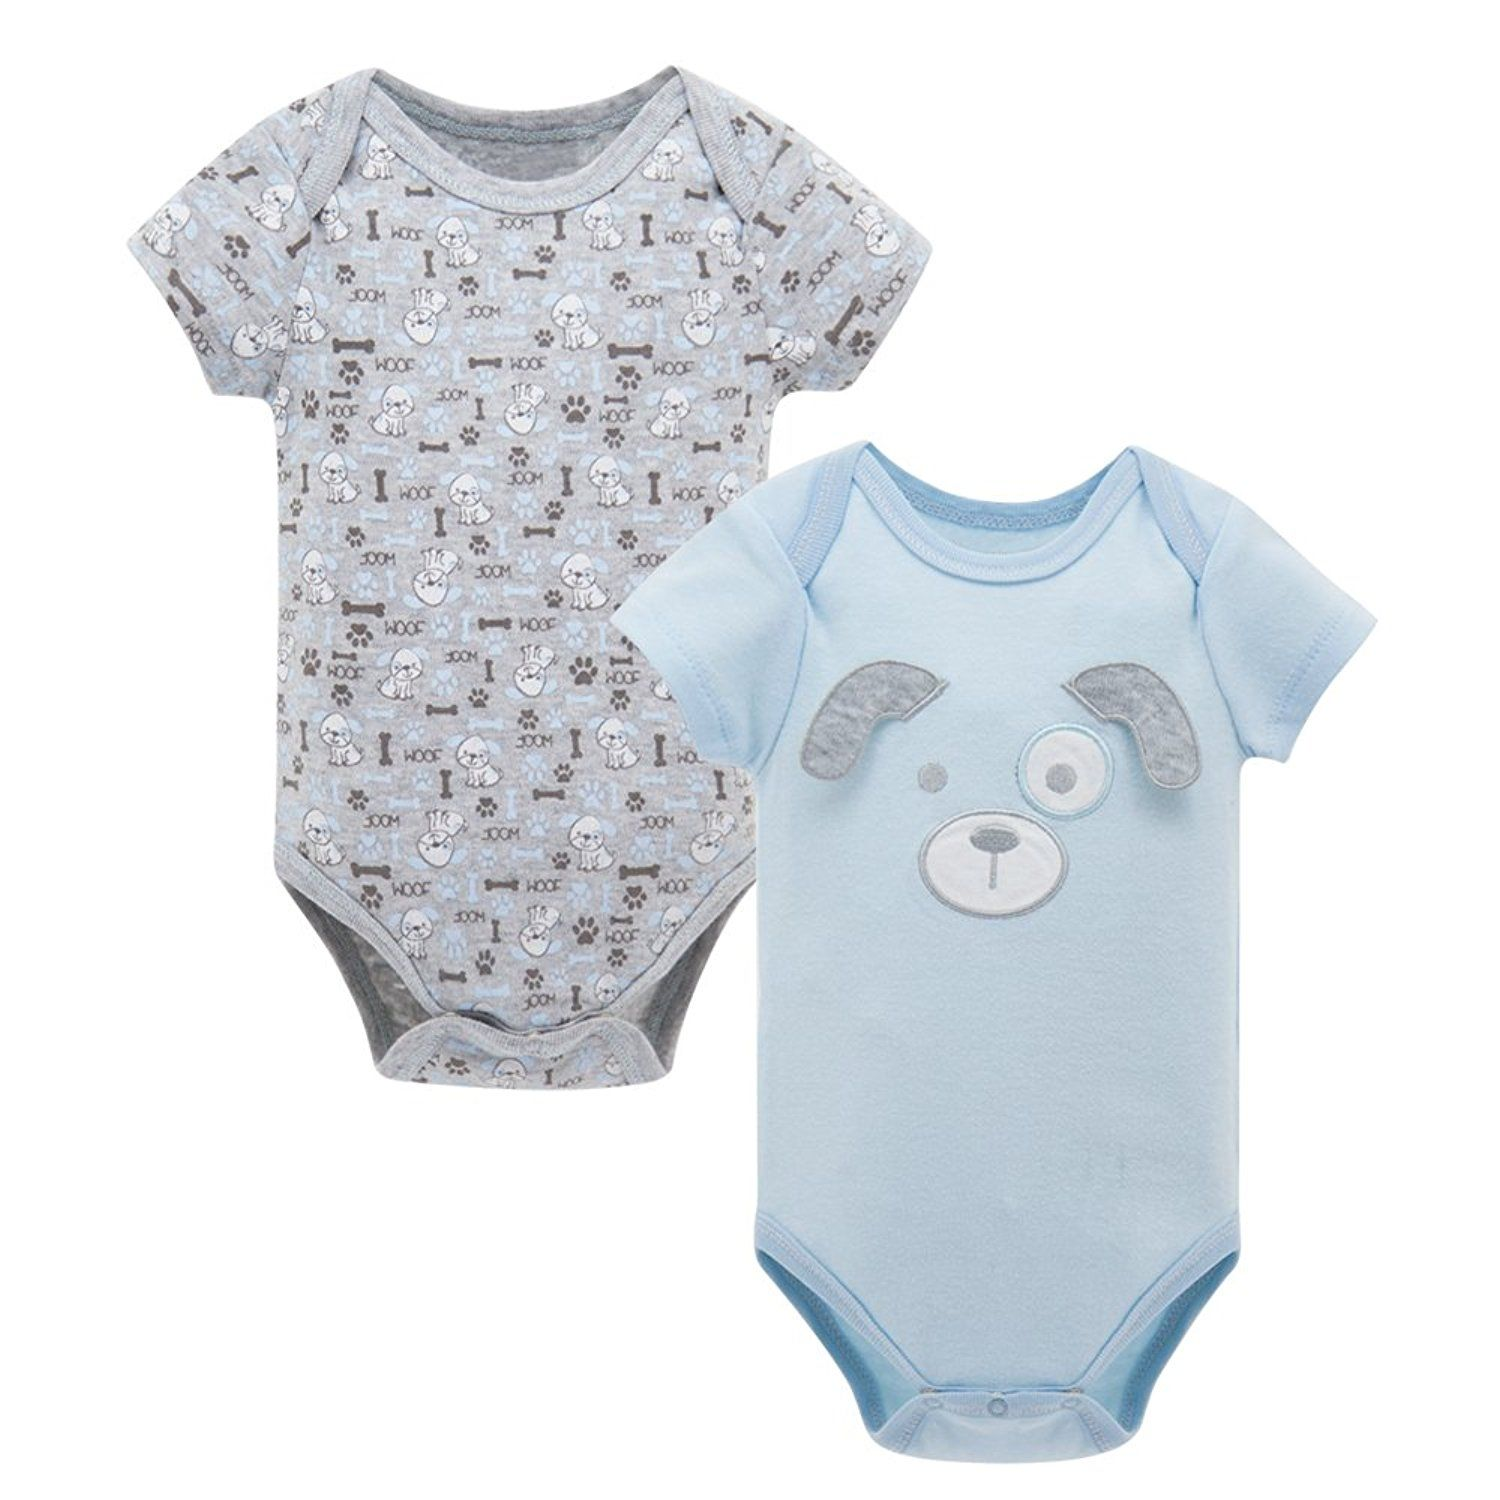 36bdc6382a3b DL MYAN Baby Rompers Short Sleeve Cotton 2PCS Newborn Baby Clothes ...